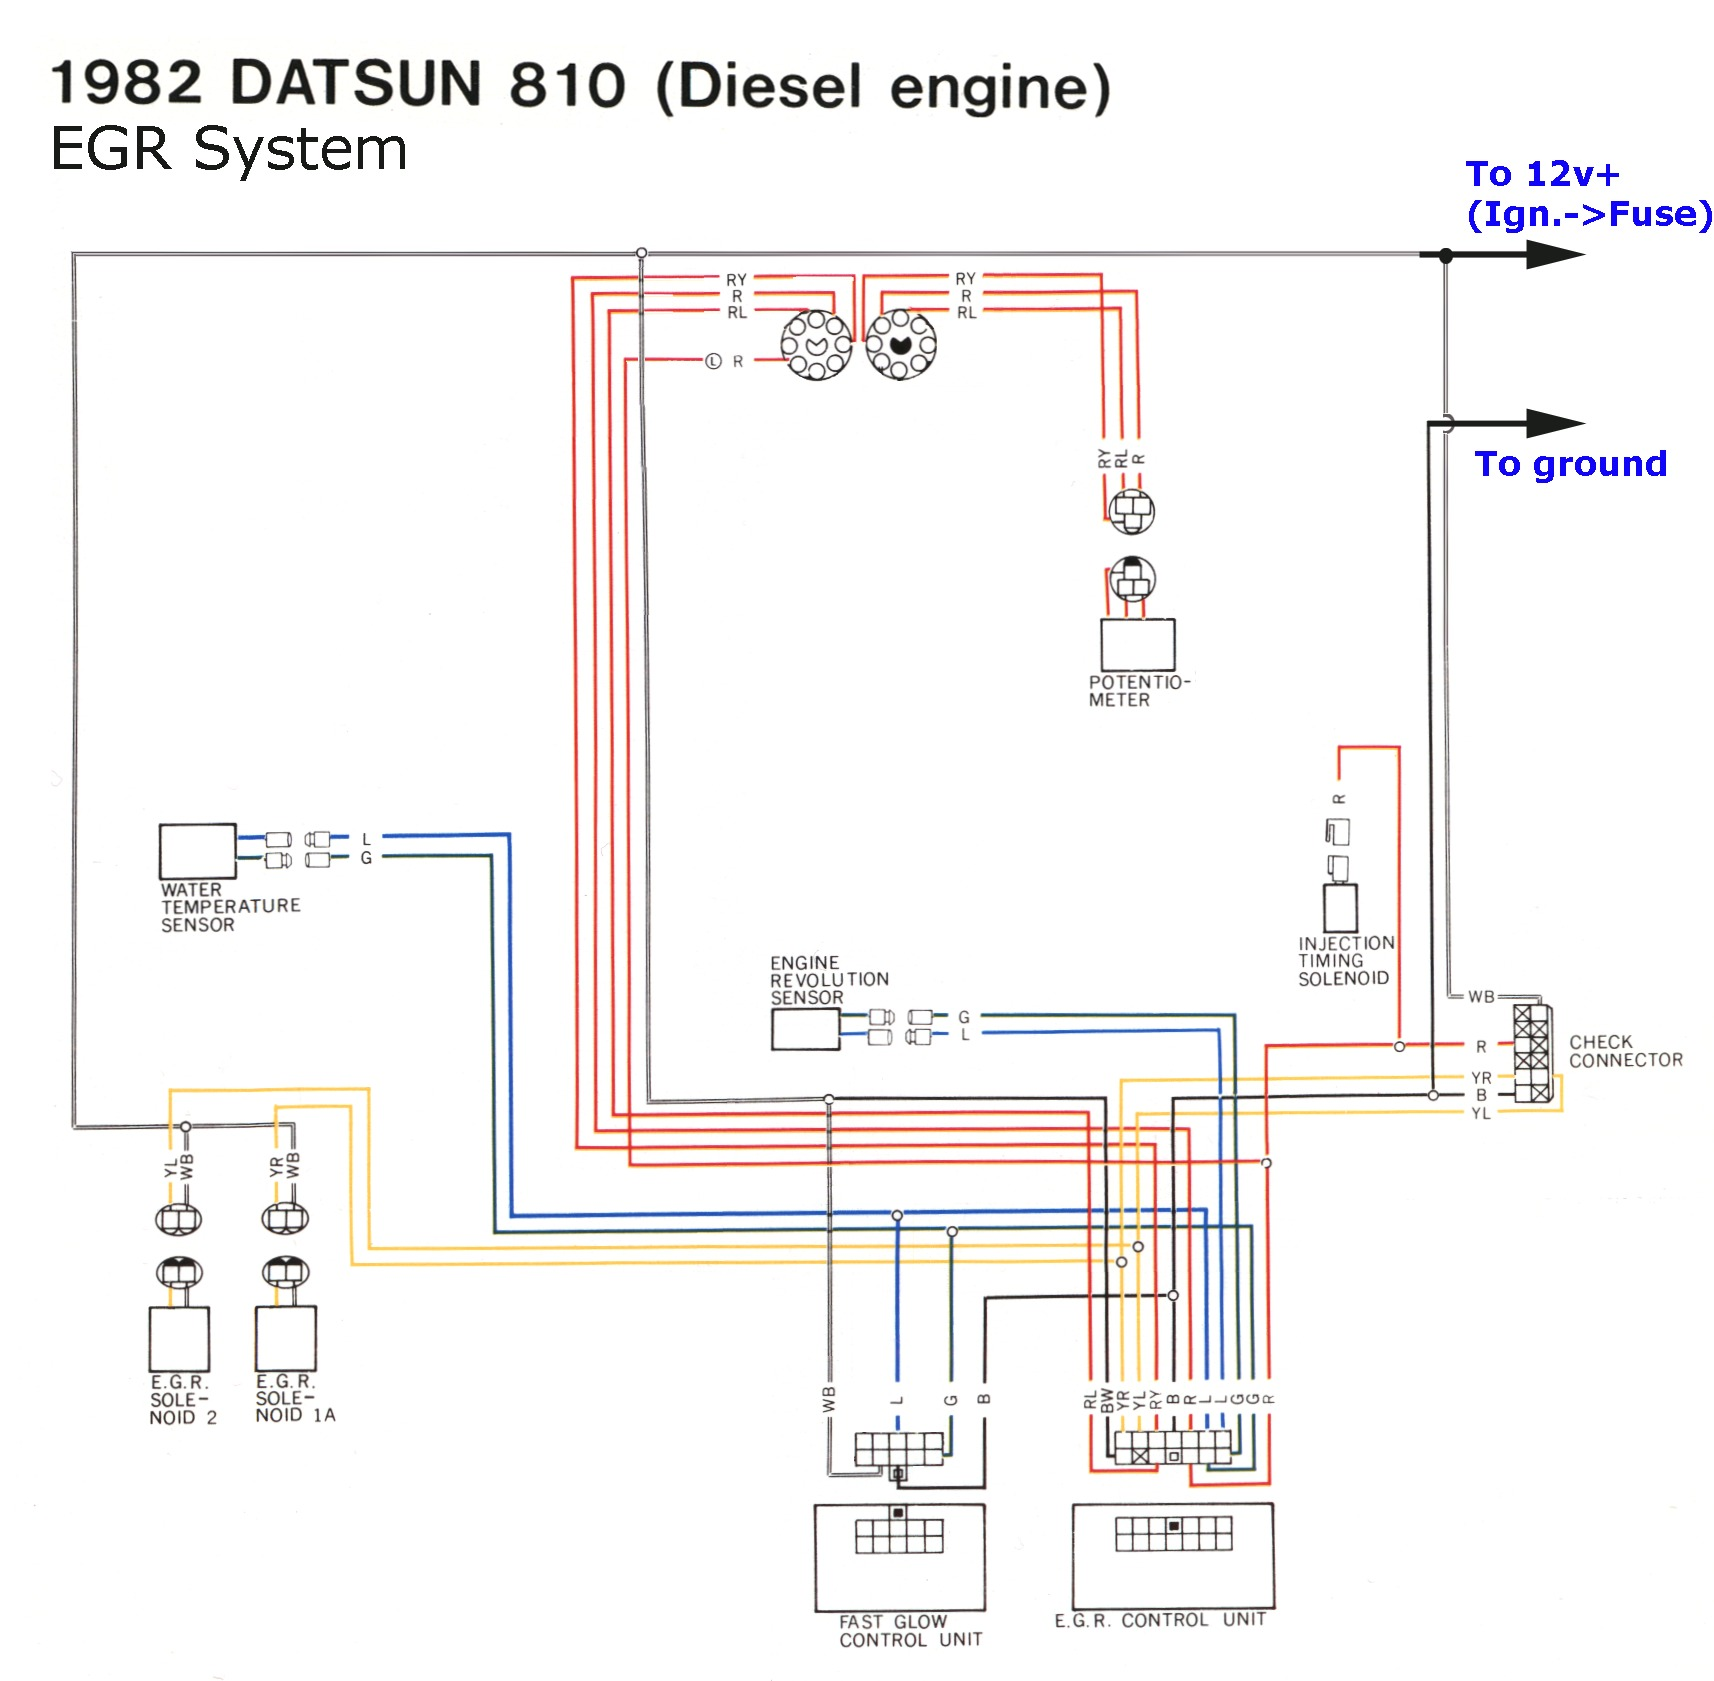 Sun Super Tach Wiring Diagram Tachometer on w123 glow plug wiring diagram for